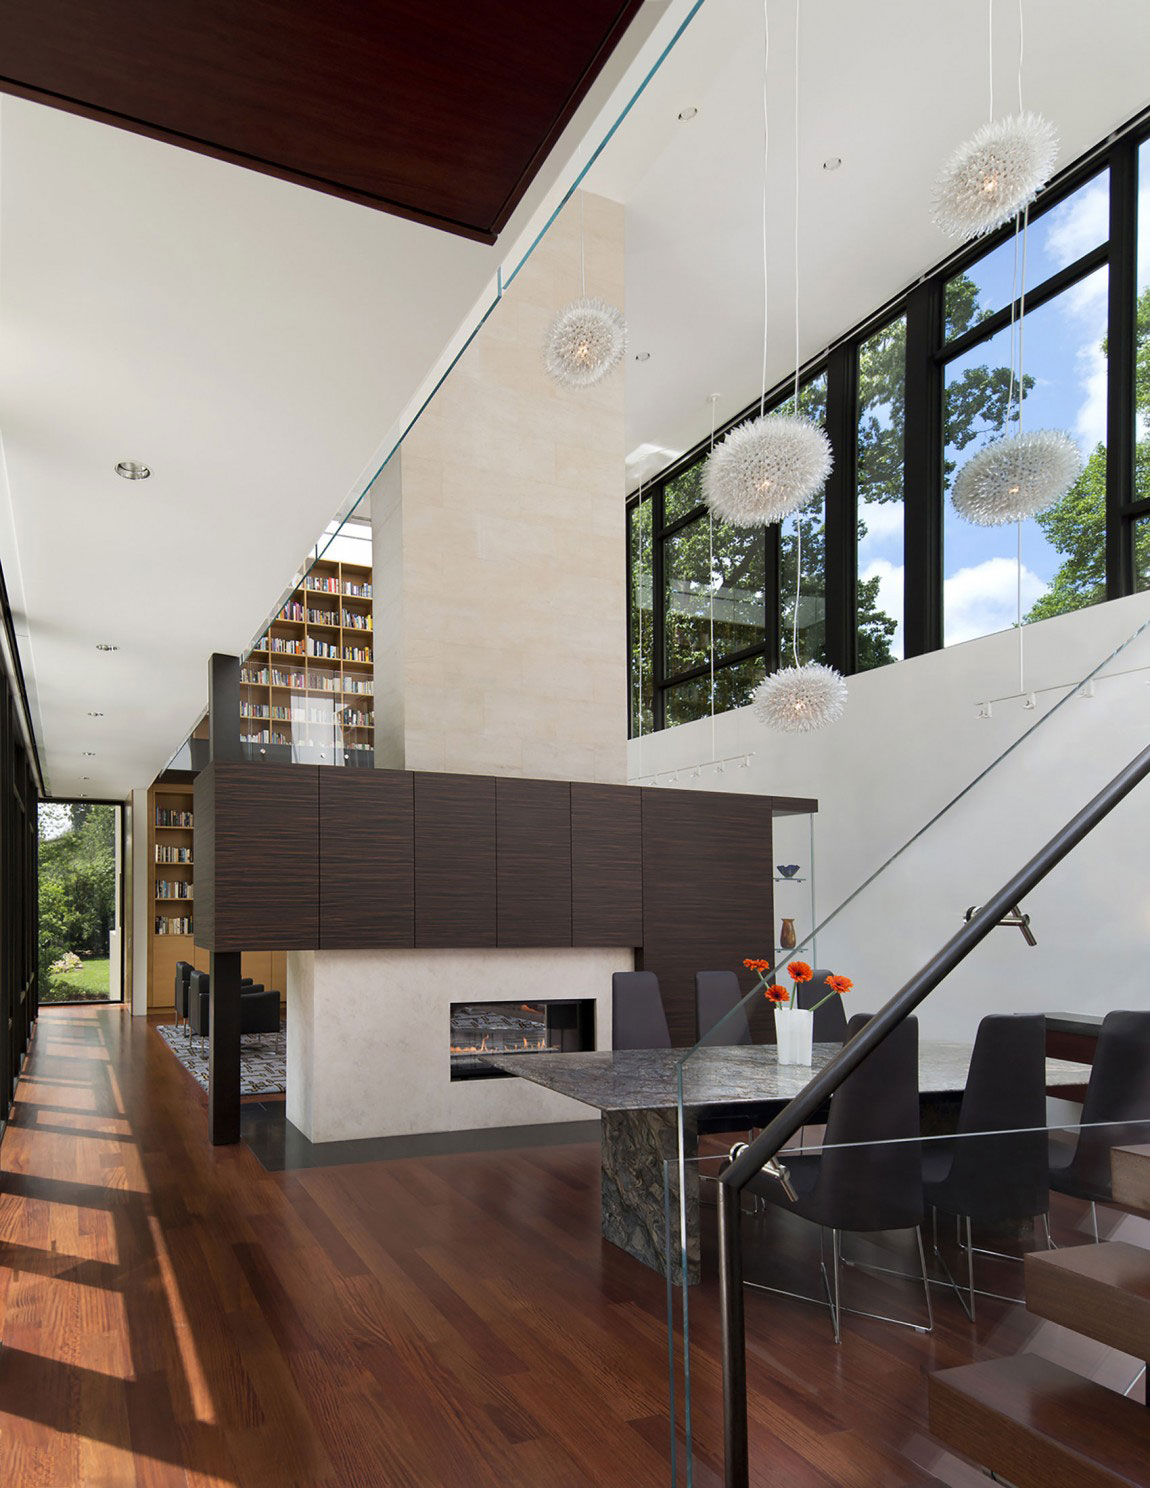 The Brandywine-house-is-an-interior-design-and-architecture-inspiration-6 The Brandywine house is an inspiration for interior design and architecture